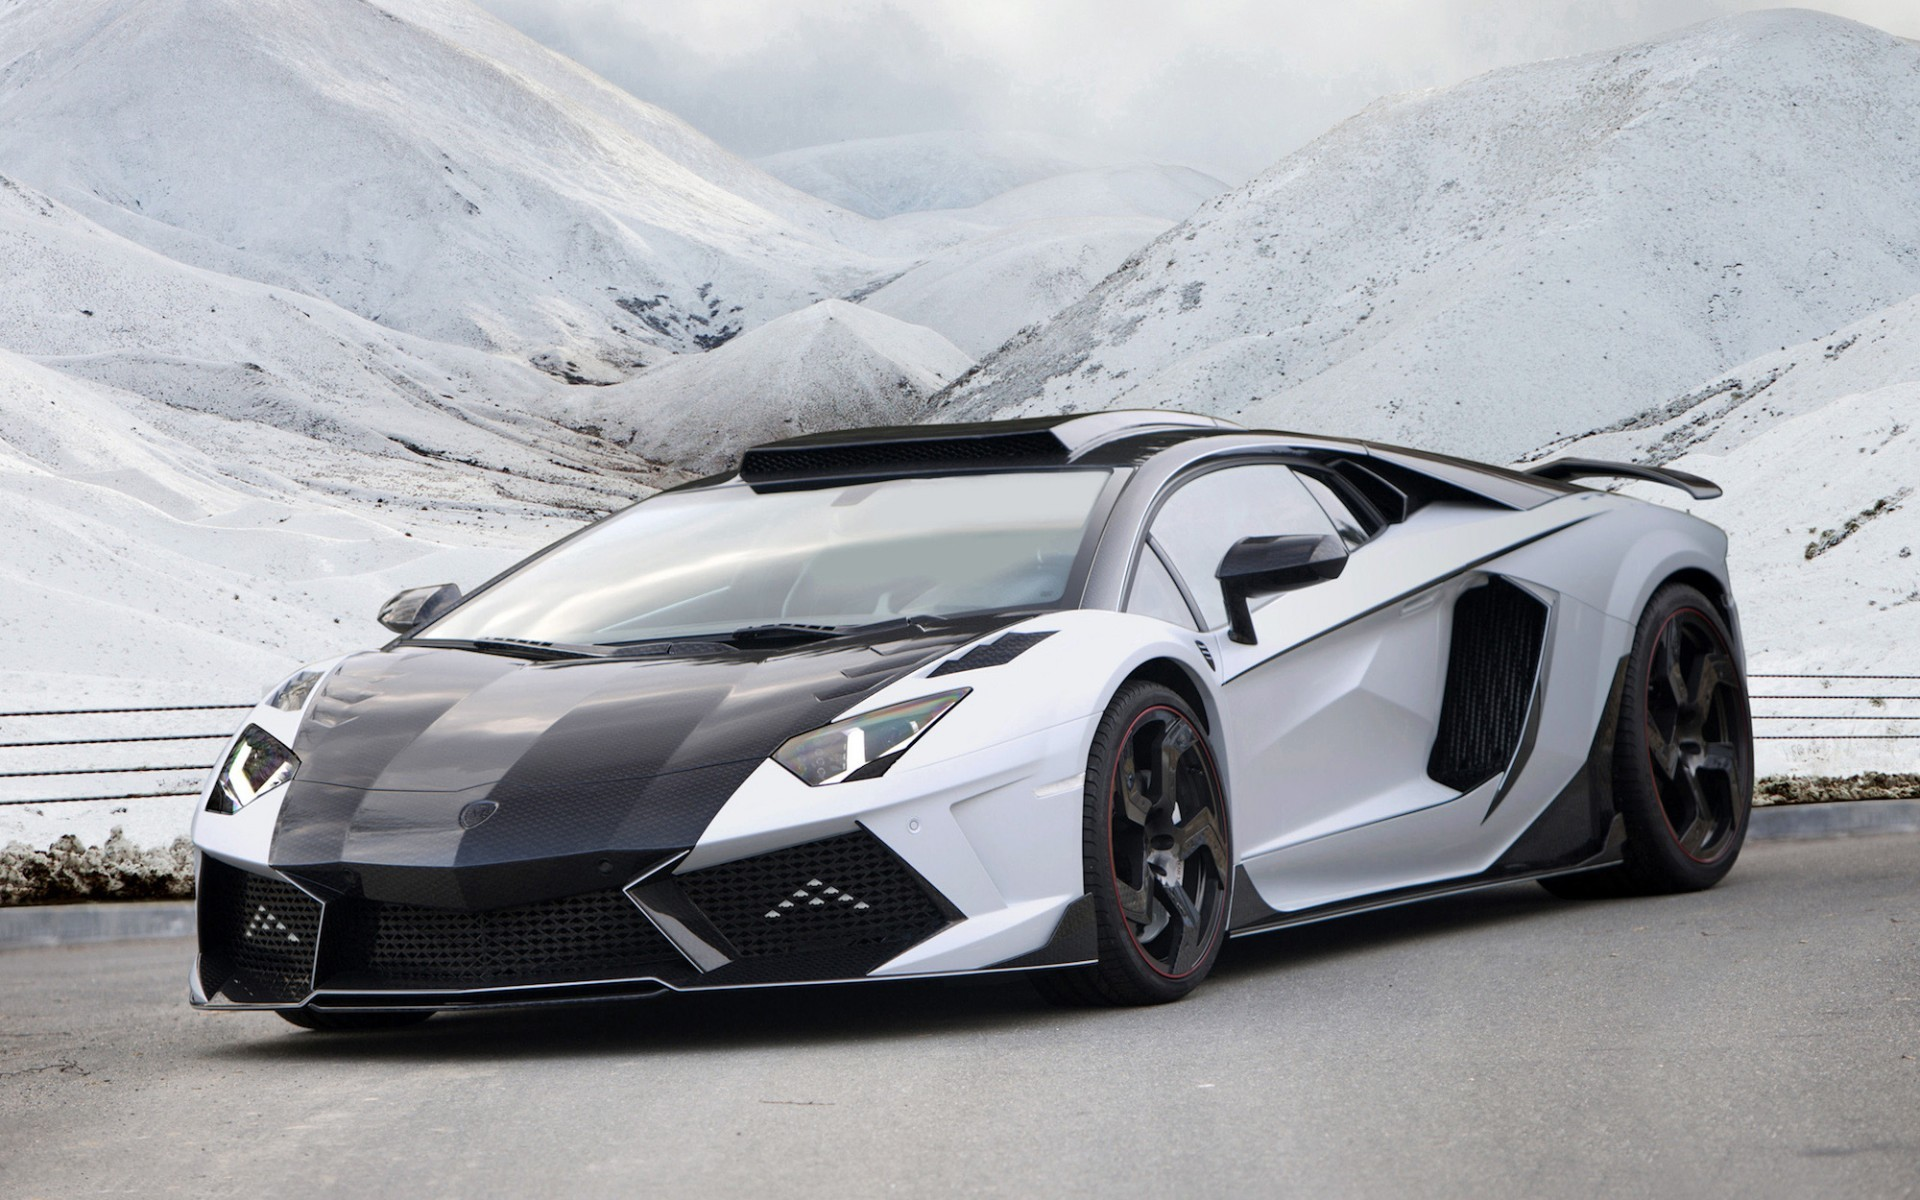 2015 Black and White Lamborghini Aventador Wallpaper